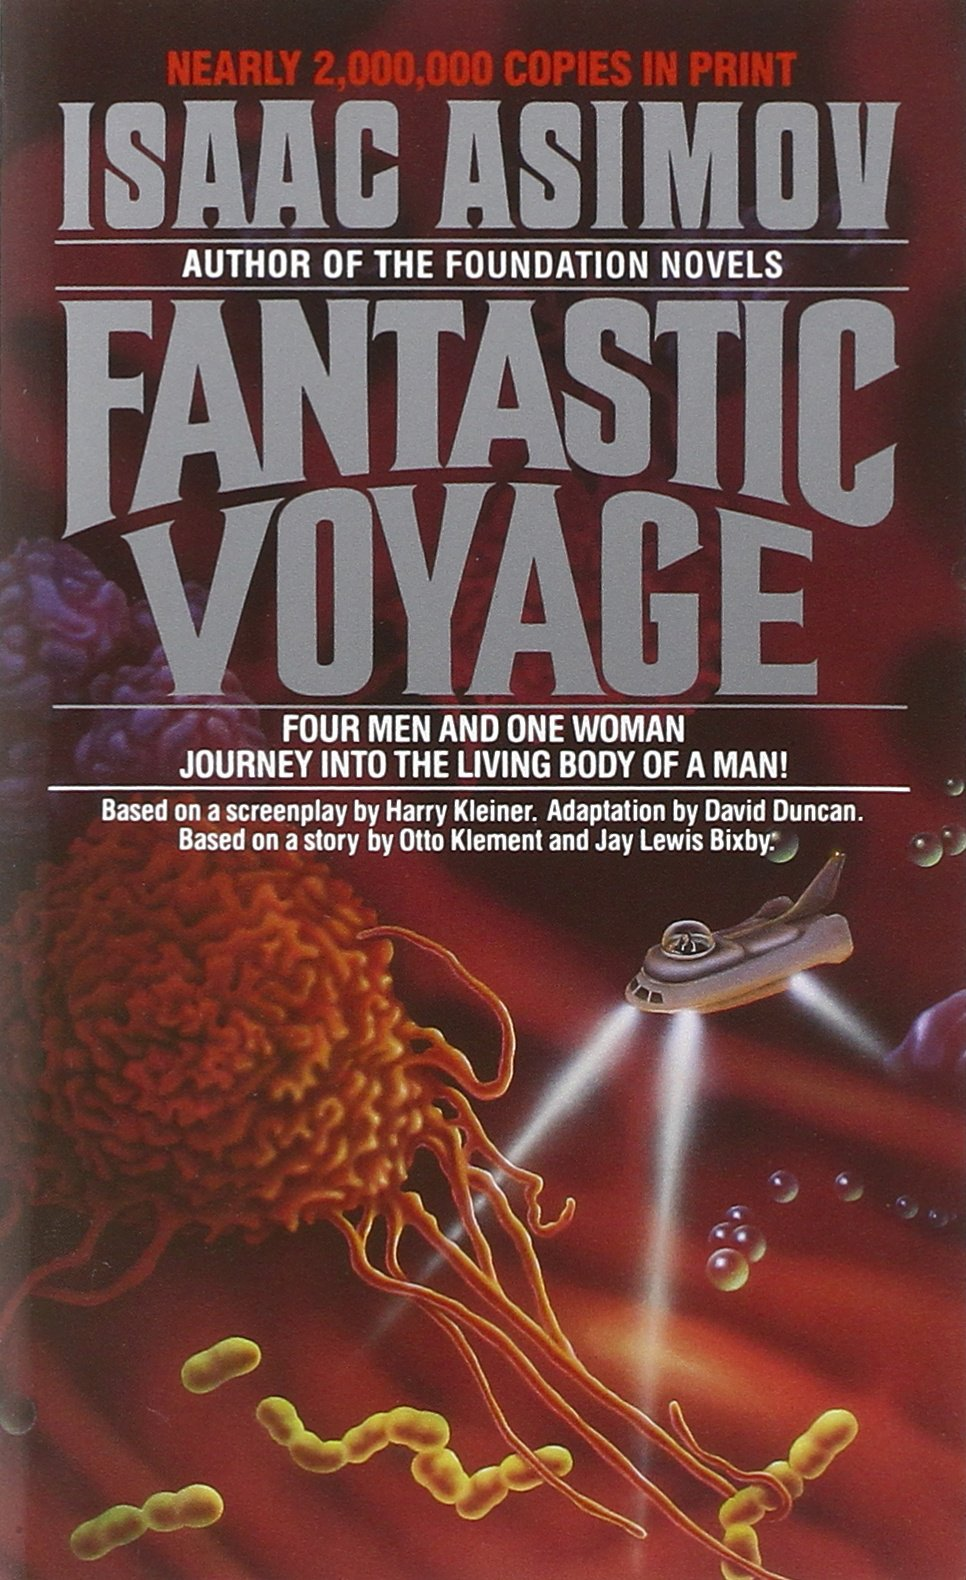 the fantastic voyage Fantastic voyage is a song by american rapper coolio it was released in  march 1994 as the  songwriter(s), norman beavers, marvin craig, brian dobbs,  artis ivey, jr, fred alexander, jr, mark adam wood, jr,  suddenly a  mysterious man with a 70's style suit, afro, and cane appears and turns the  bicycle sitting upside.